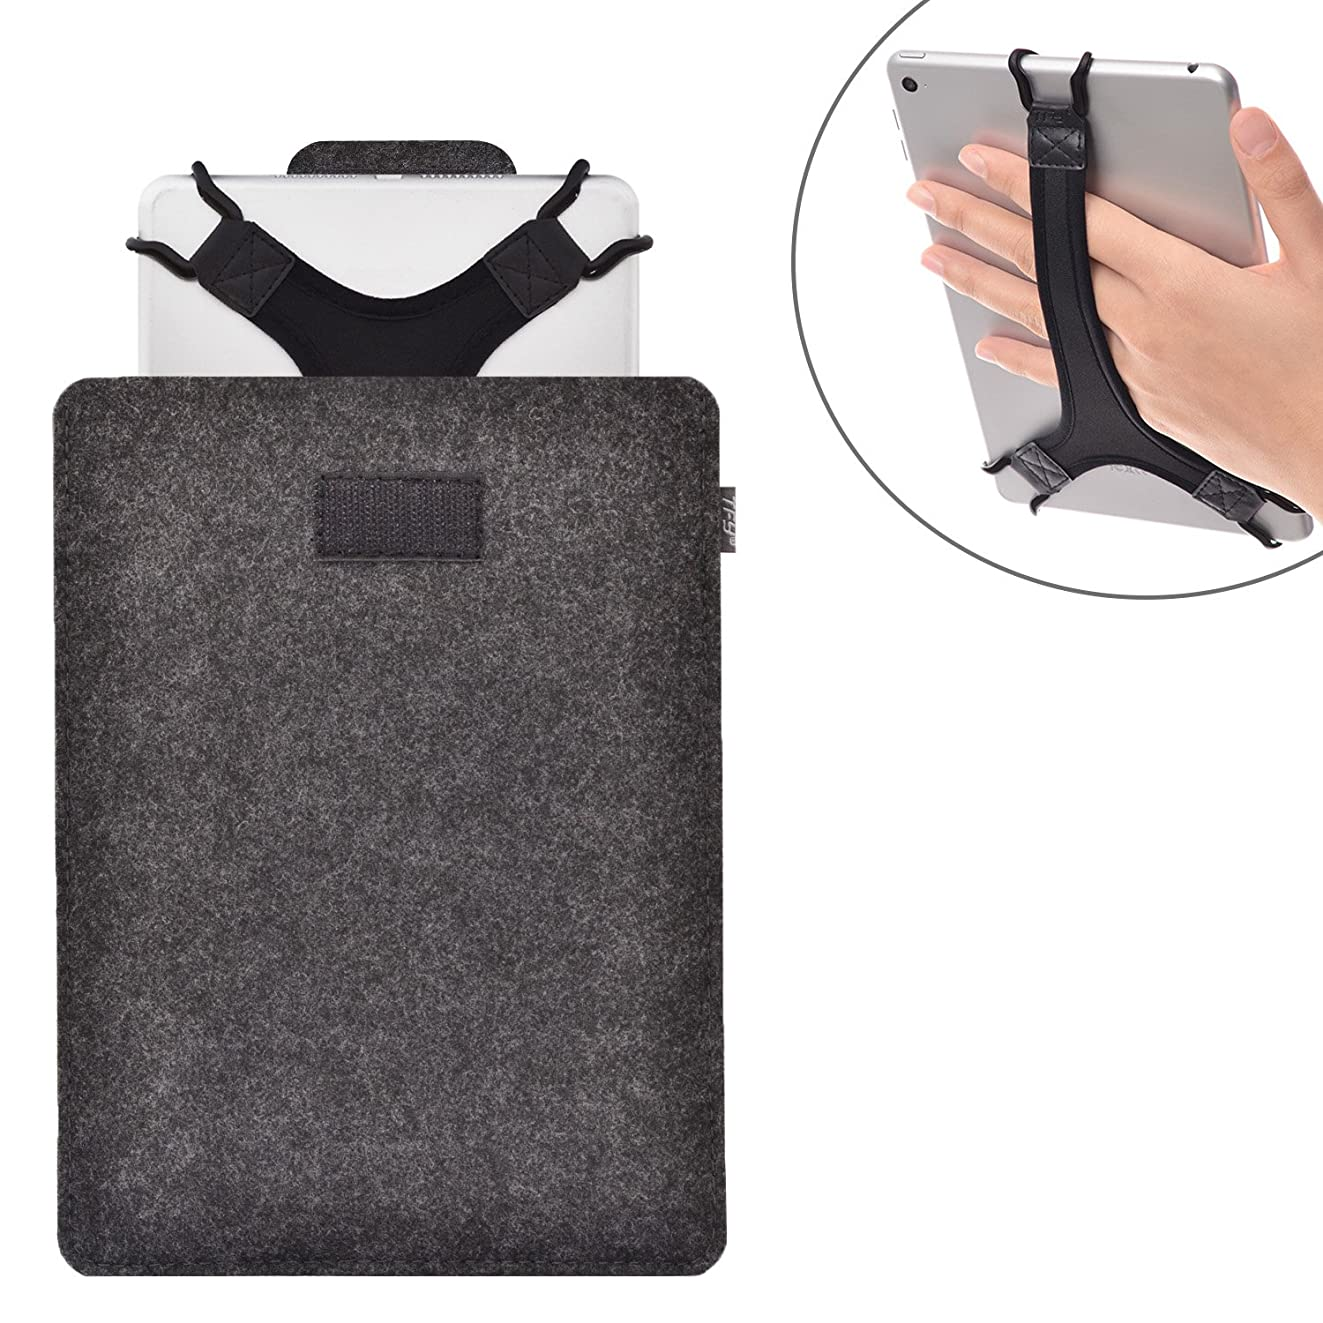 TFY Protective Carrying Pouch Bag (Dark Grey), Plus Bonus Hand Strap Holder for for 9-10 Inch Tablets - iPad Air/iPad Pro 9.7